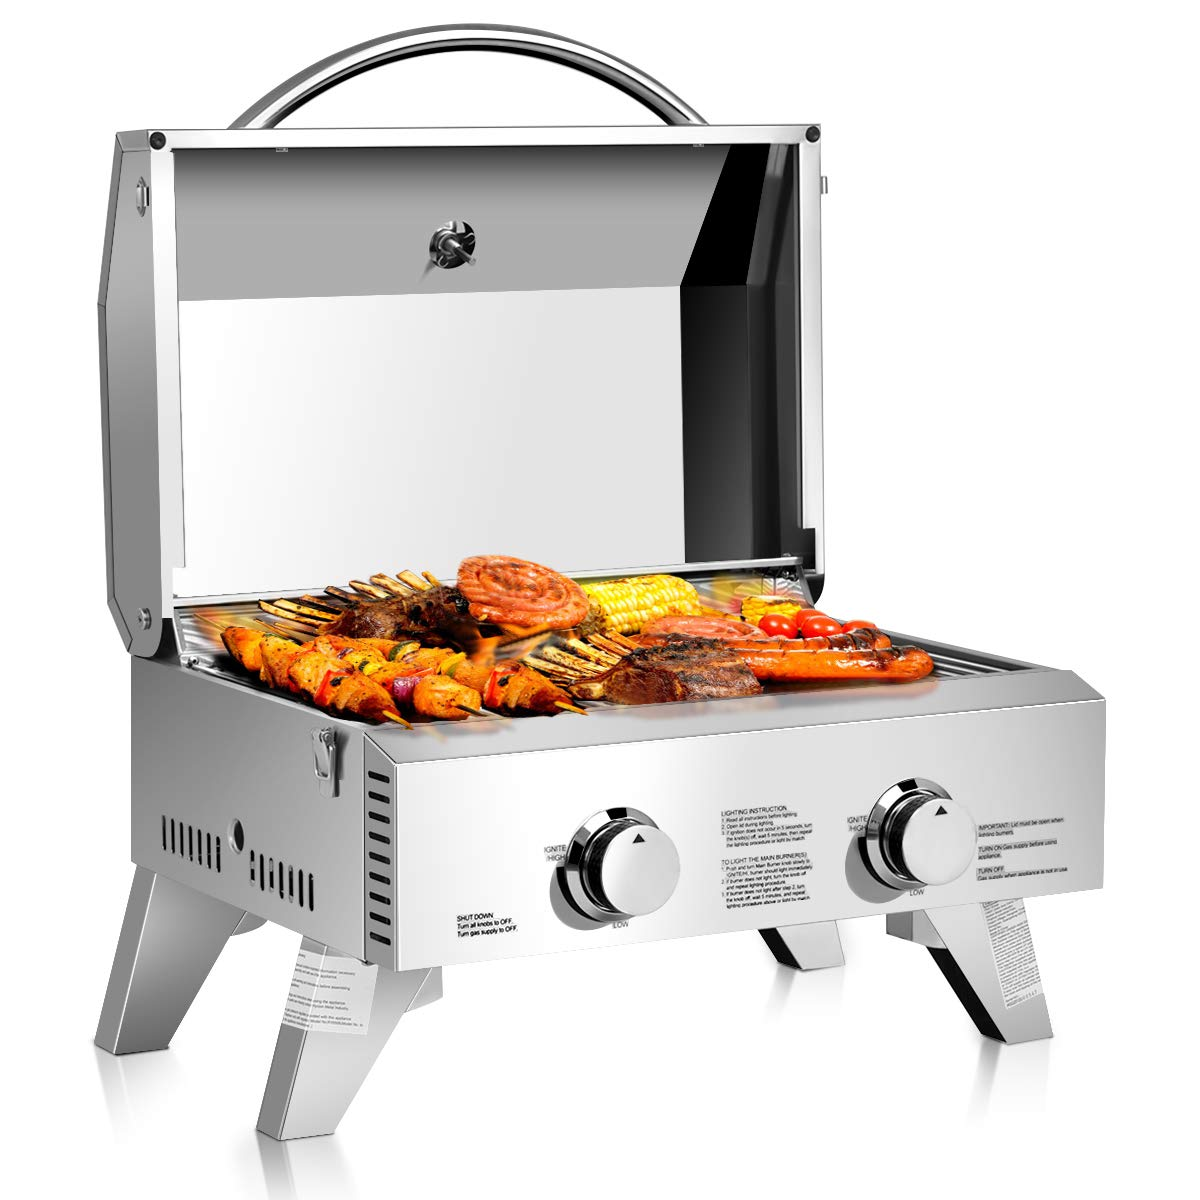 Giantex Travel Grill cooking food